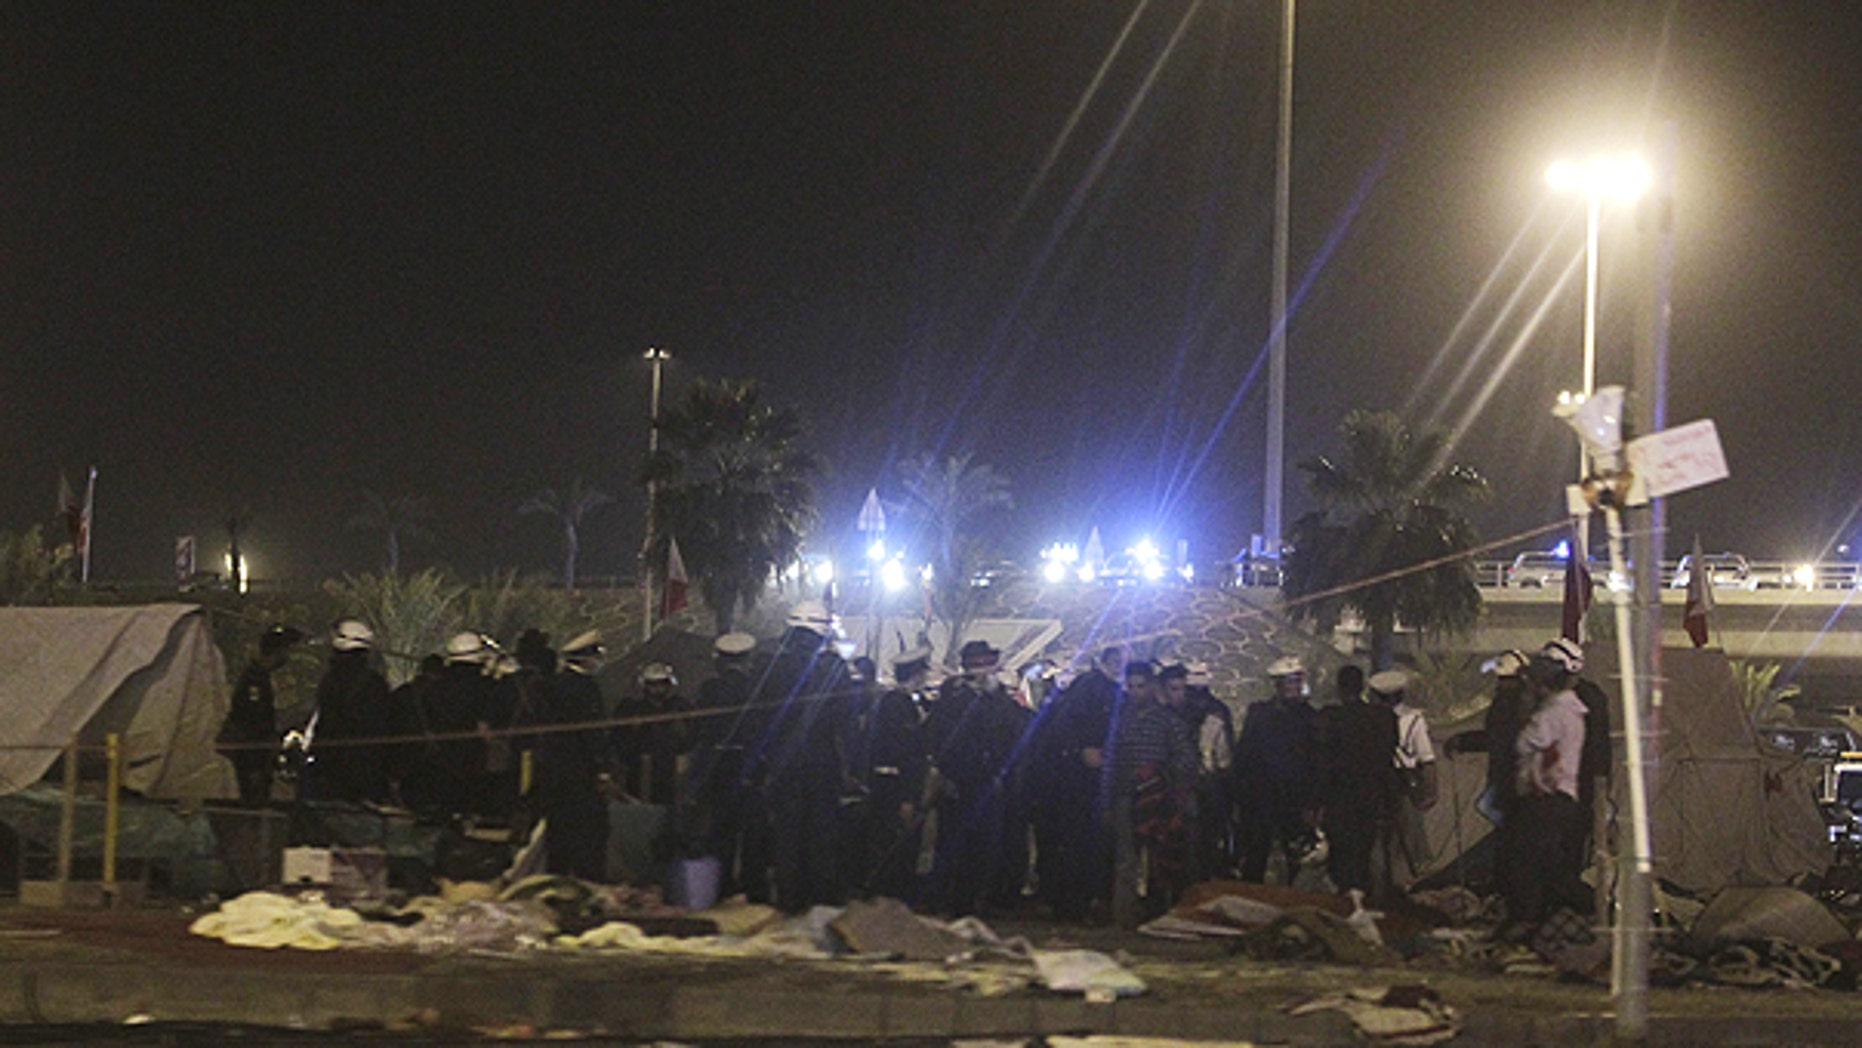 Feb. 17: Bahrani riot policemen are seen after attacking peaceful demonstrators camping at the Pearl roundabout, in Manama, Bahrain.